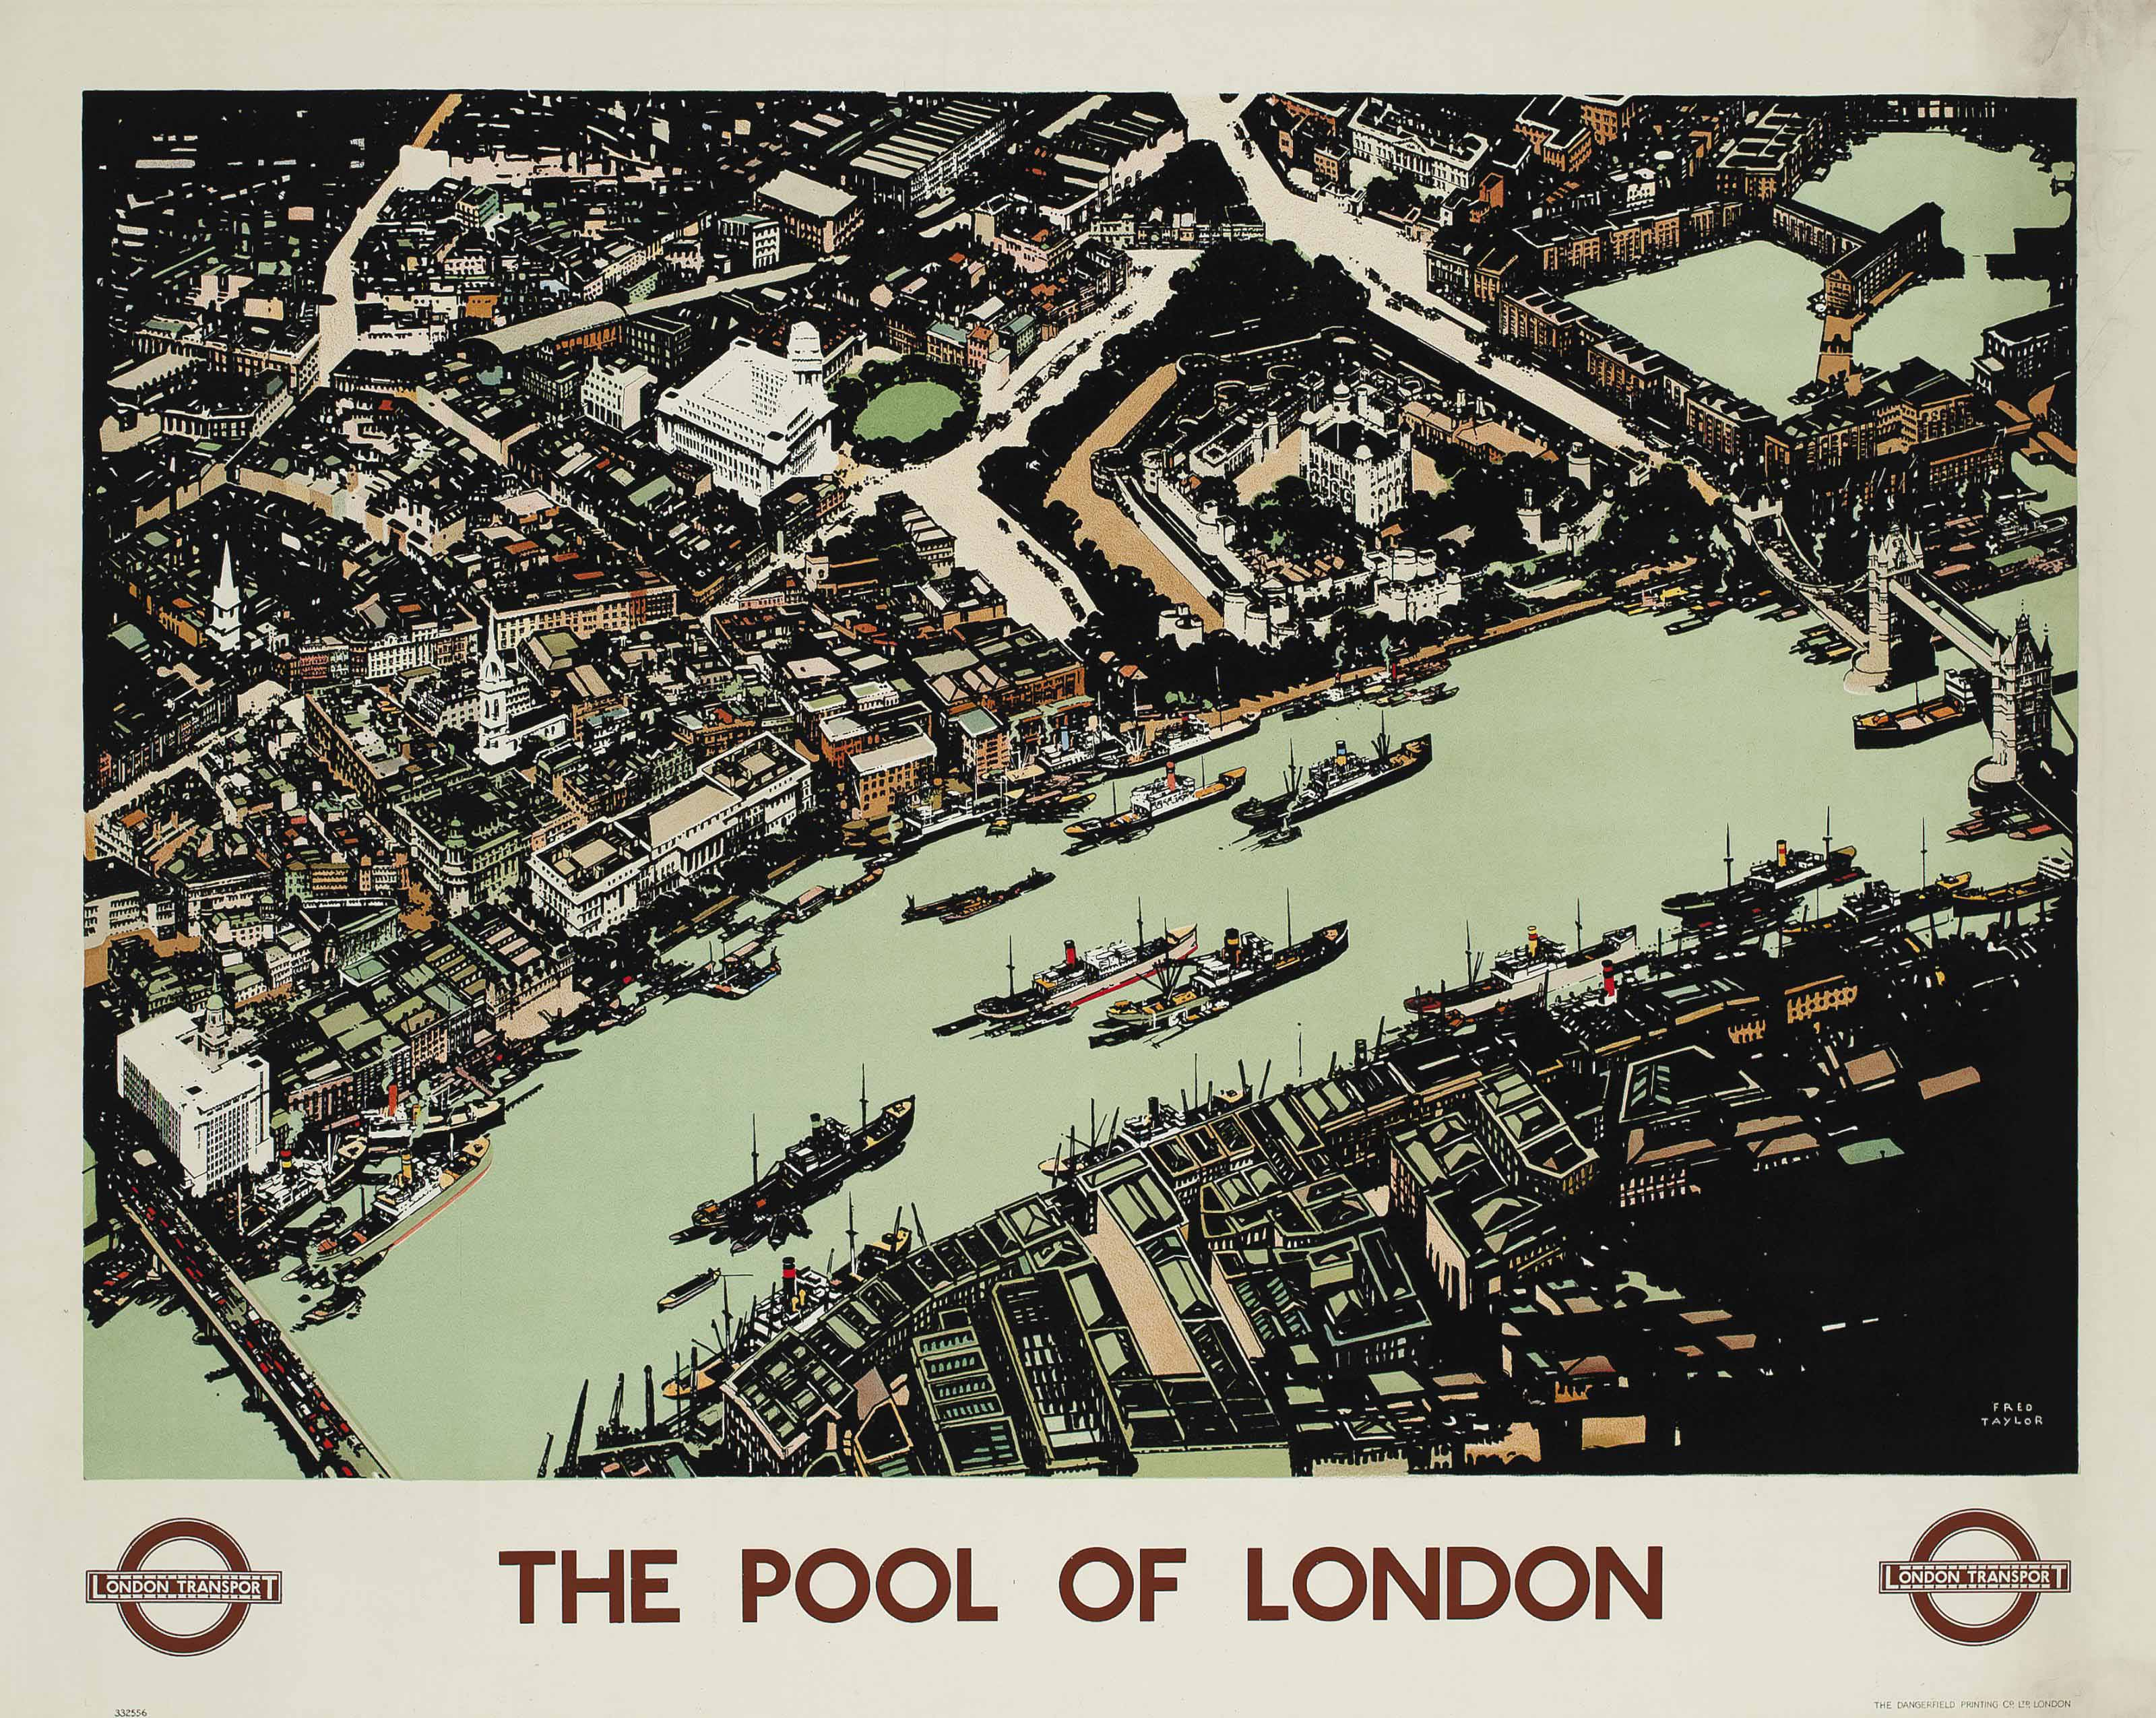 THE POOL OF LONDON